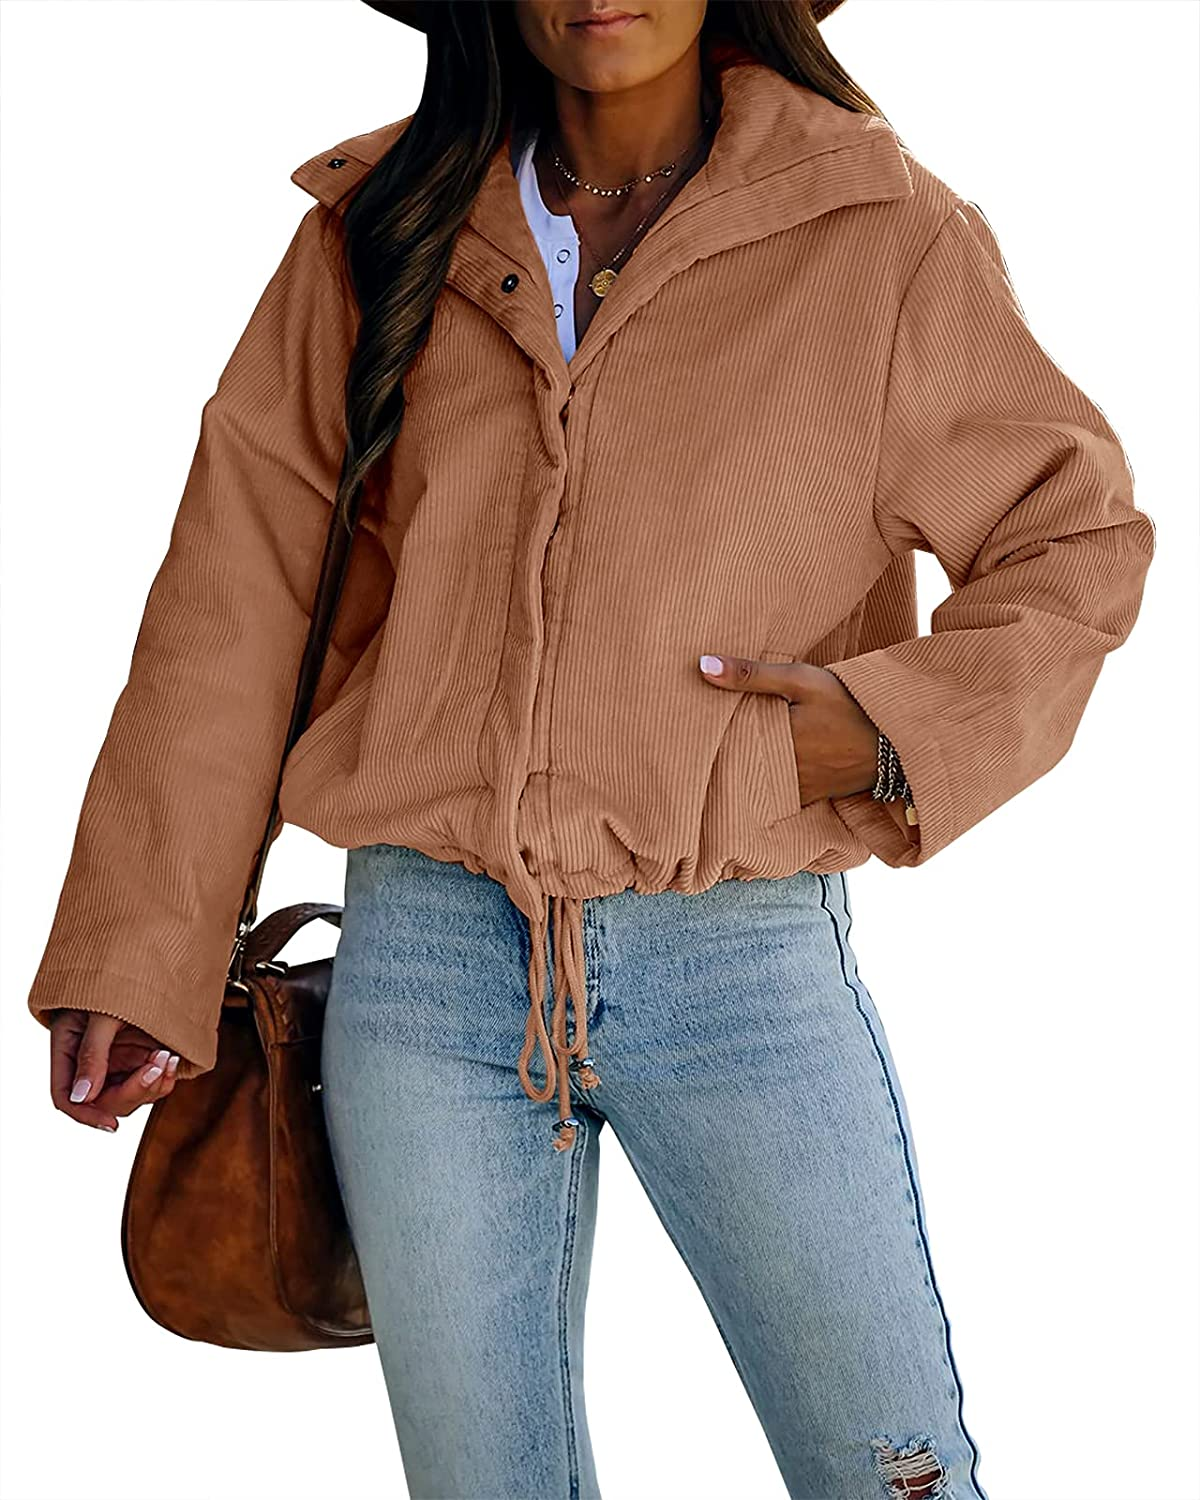 Ermonn Women's Corduroy Jacket Long Sleeve Fall Snap Button Oversized Shirts Pocketed Casual Blouses